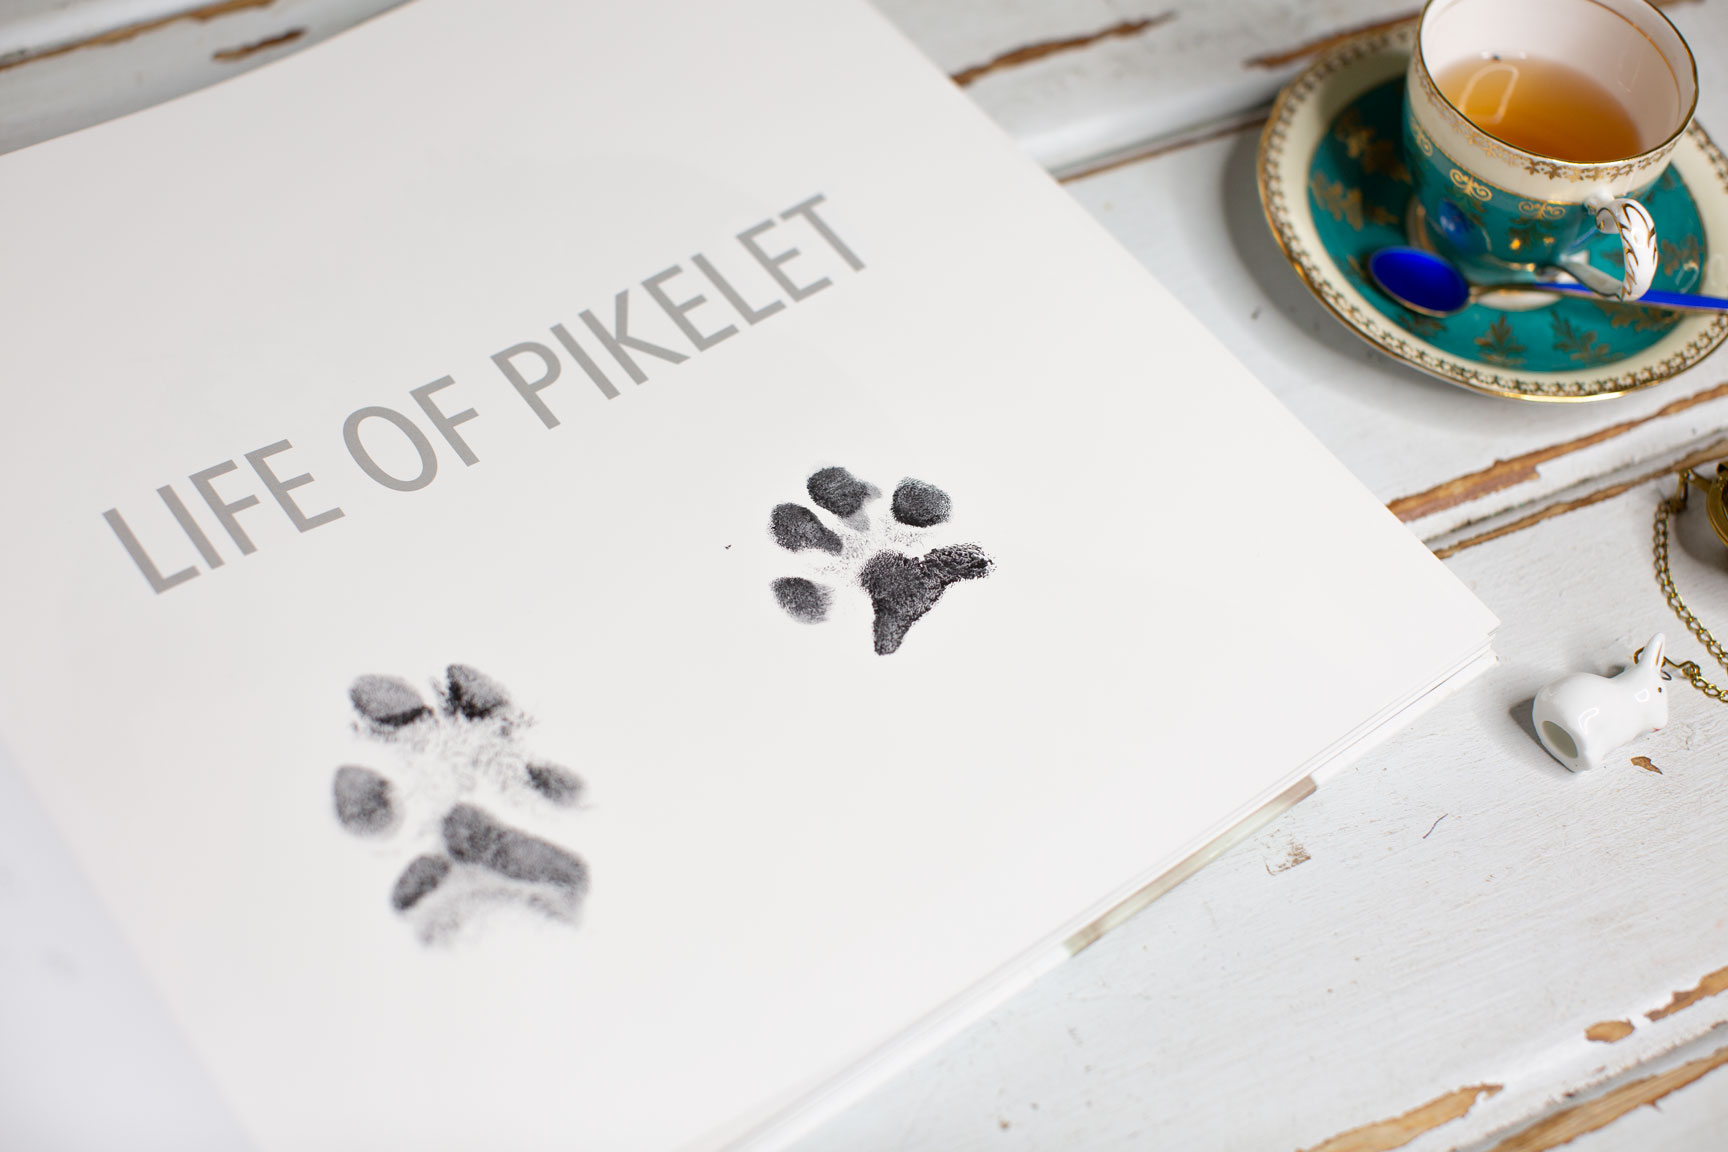 Life Of Pikelet Coffee Table Book Pawtographed By Pikelet And Patty Cakes